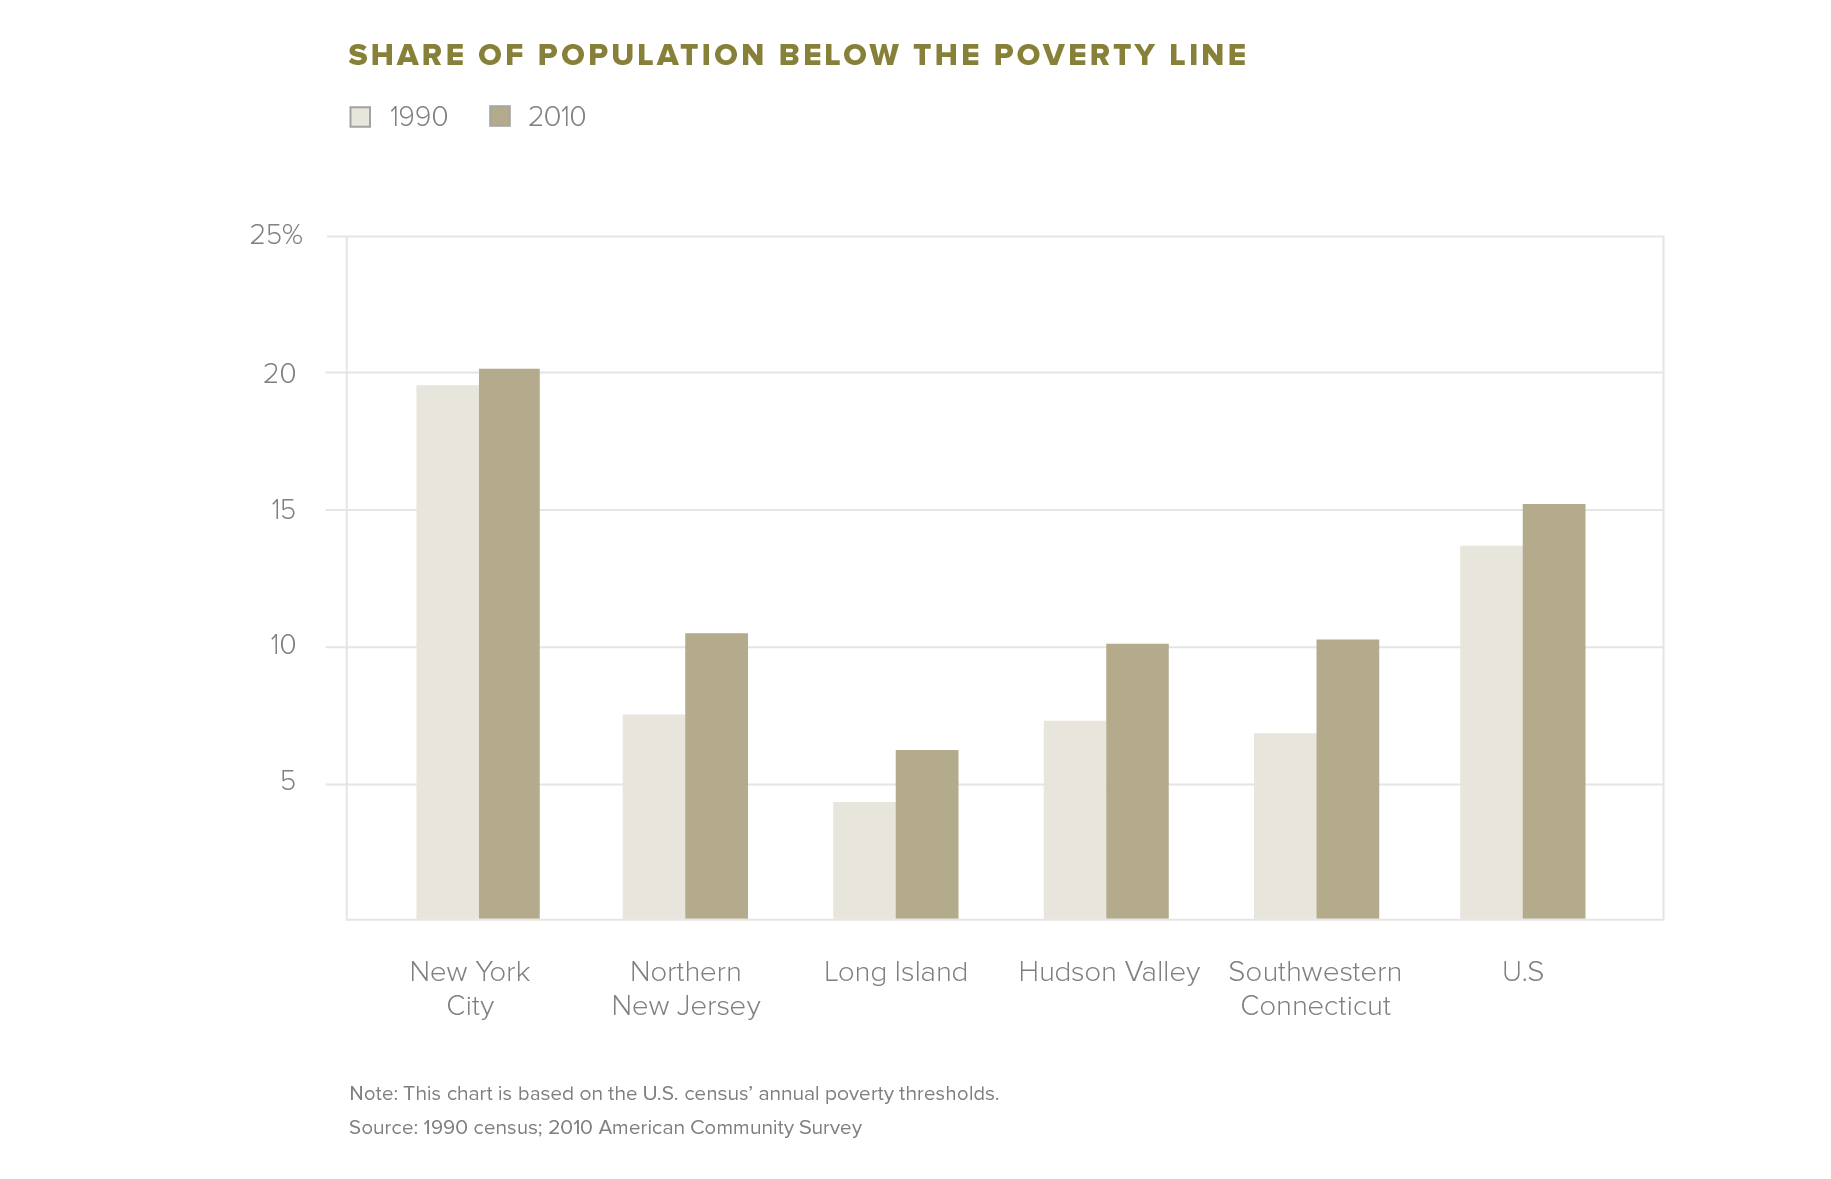 Share of Population Below the Poverty Line